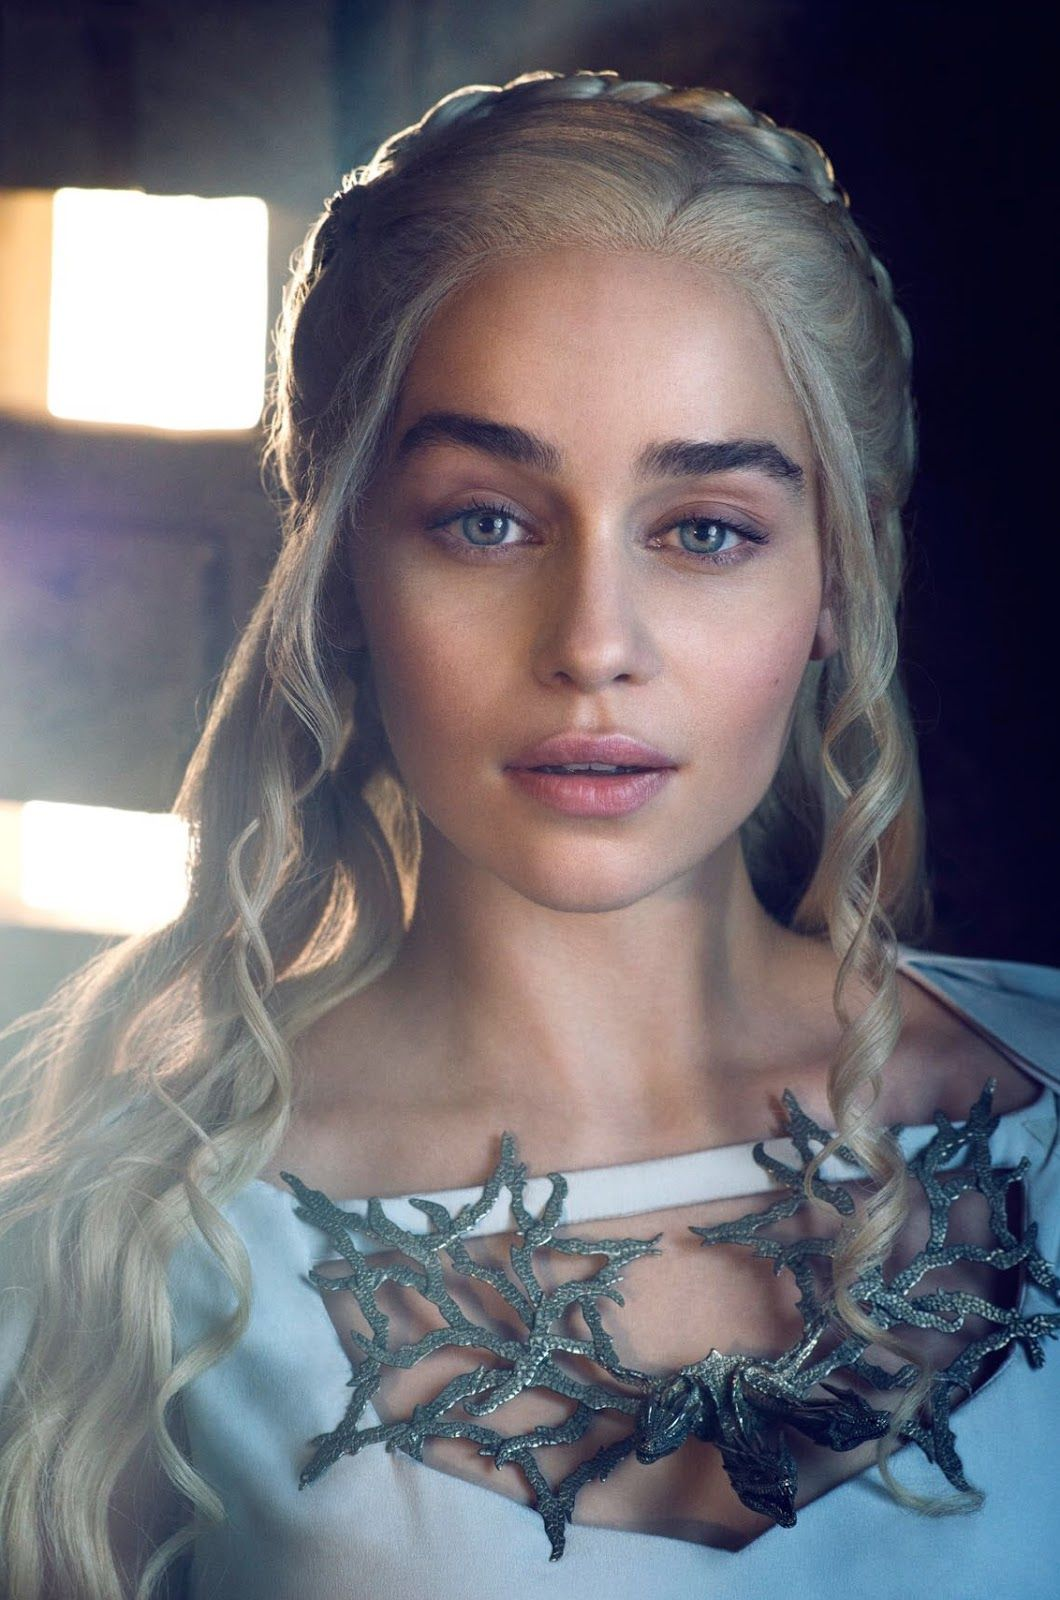 1000 images about emilia clarke on pinterest emilia - Terminator Genisys Actress Emilia Clarke Full Hd Images And Wallpapers Hd Photos